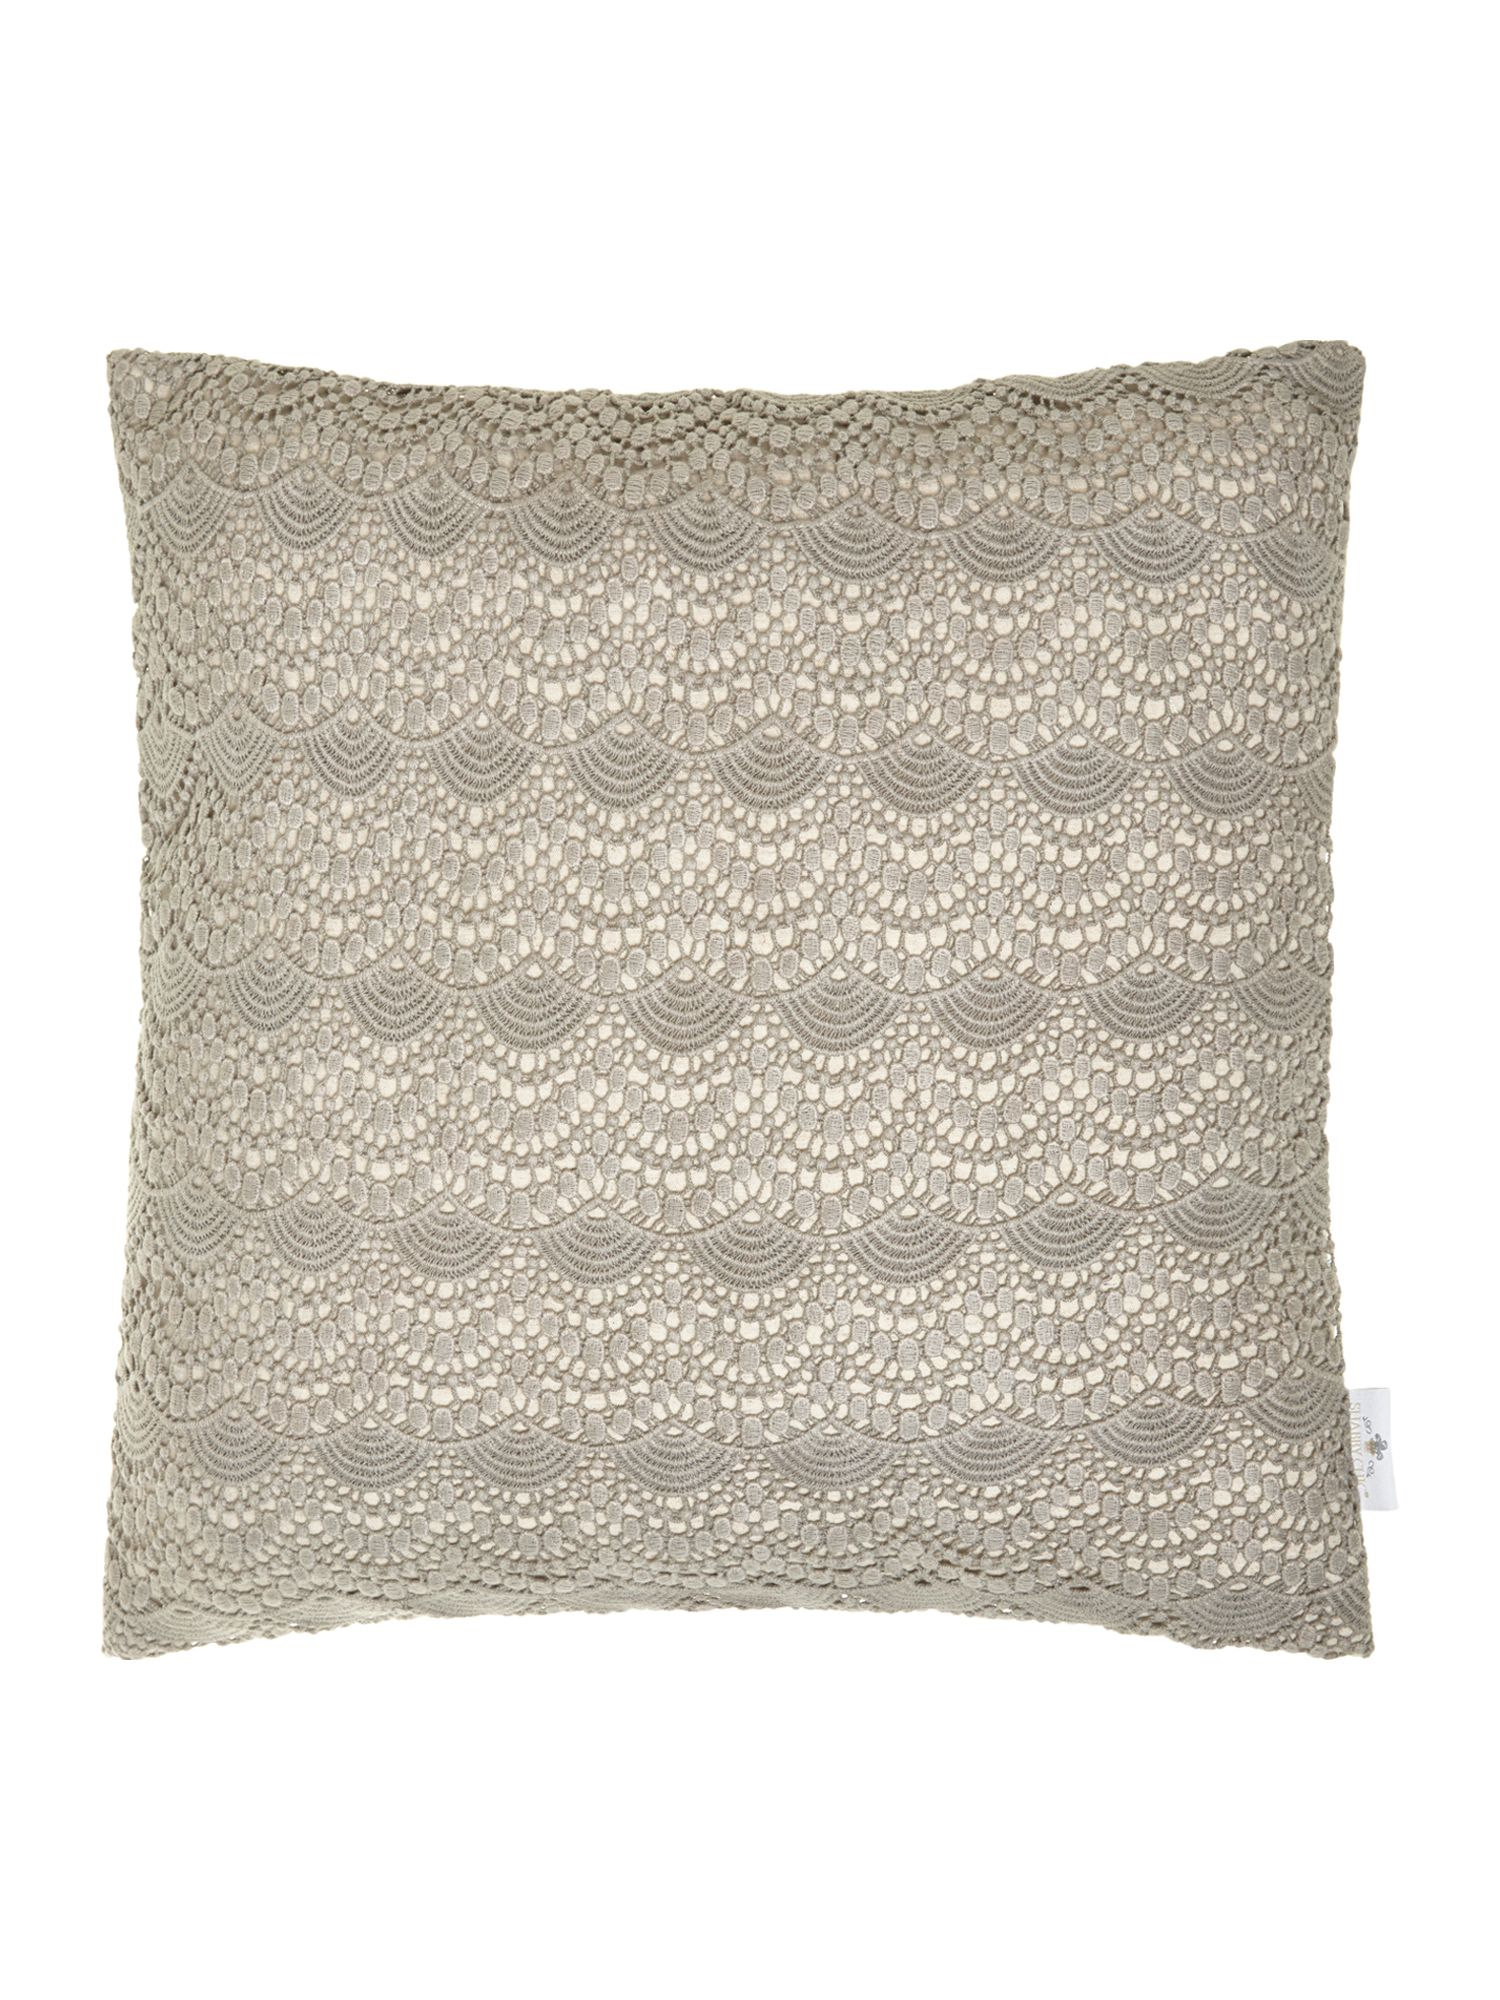 Crochet style cushion, grey